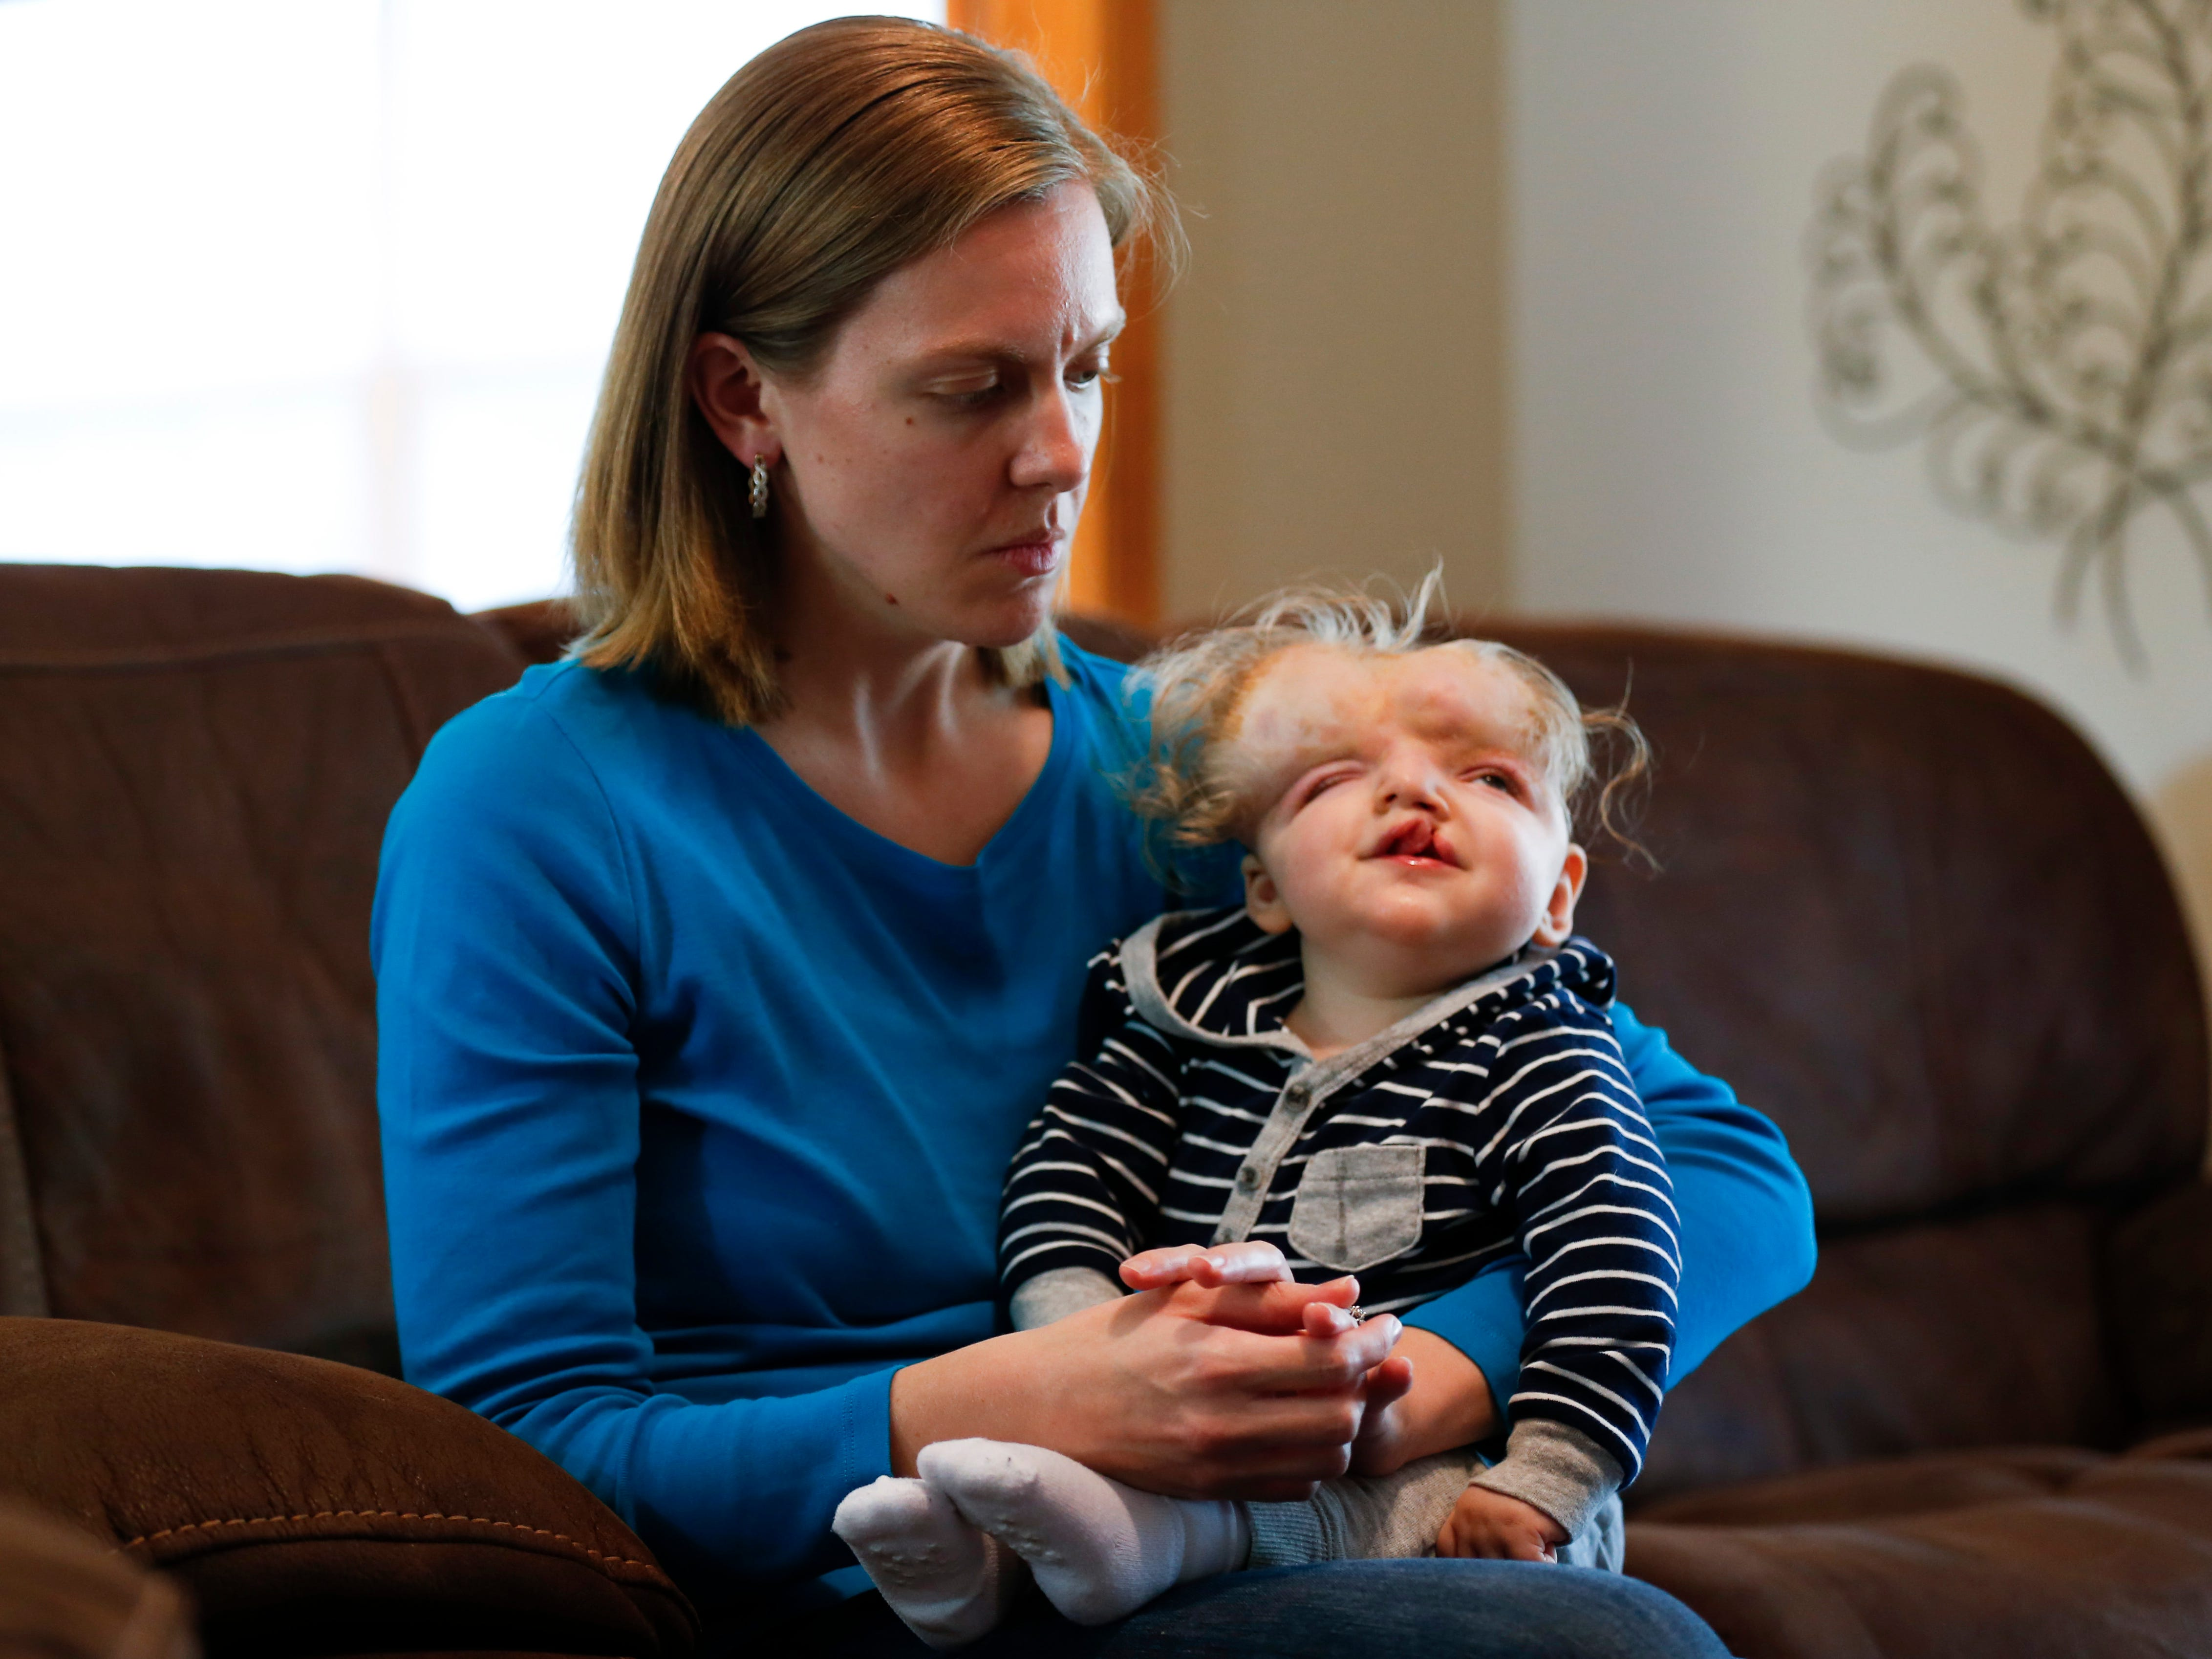 Jessica Masterson holds her one-year-old son Owen at their home on Thursday, October 11, 2018. Owen was born missing the top part of his skull and was not expected to survive childbirth.